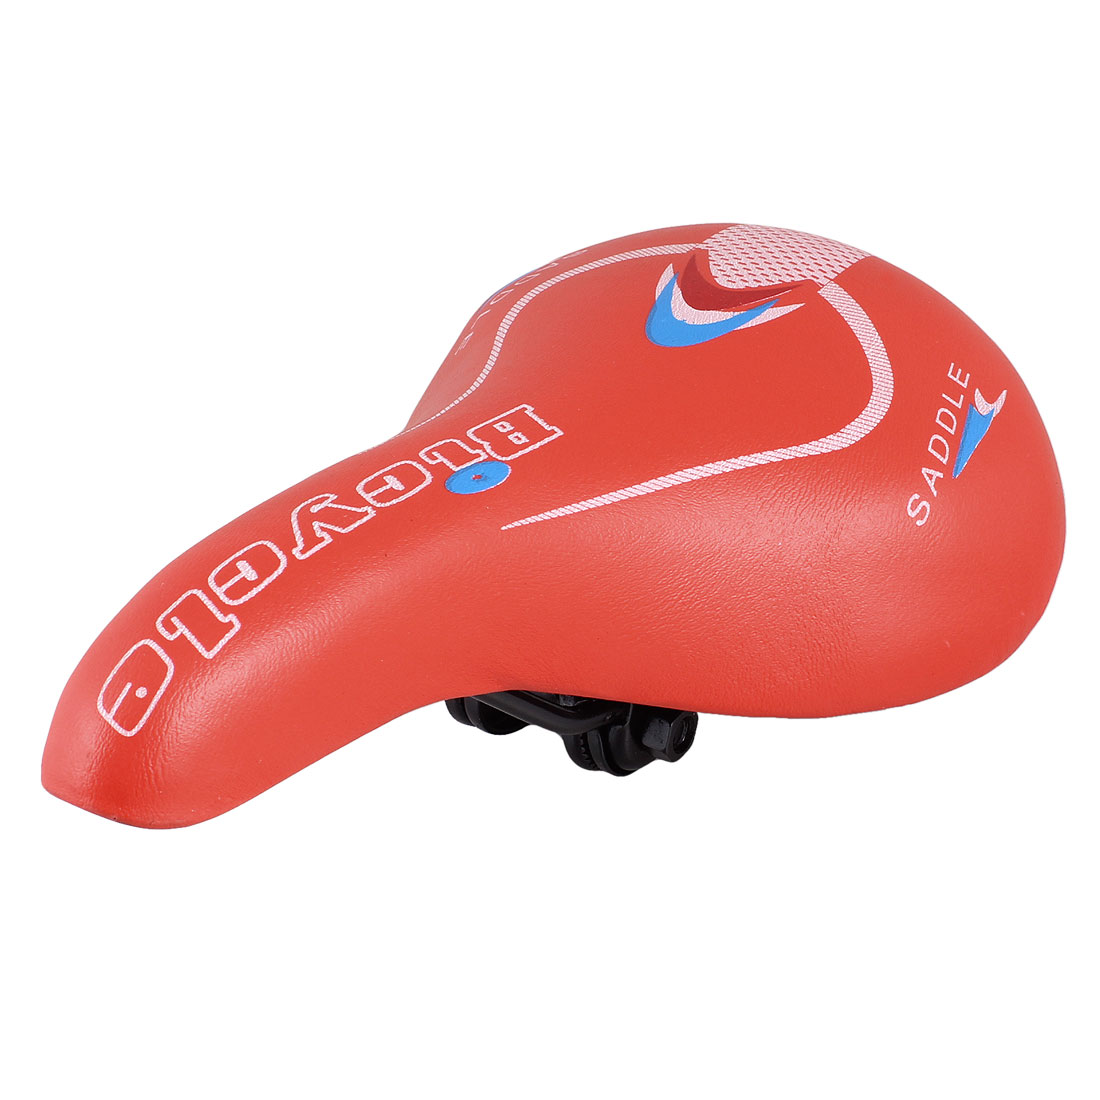 Red Faux Leather Coated Soft Foam Bike Seat Saddle